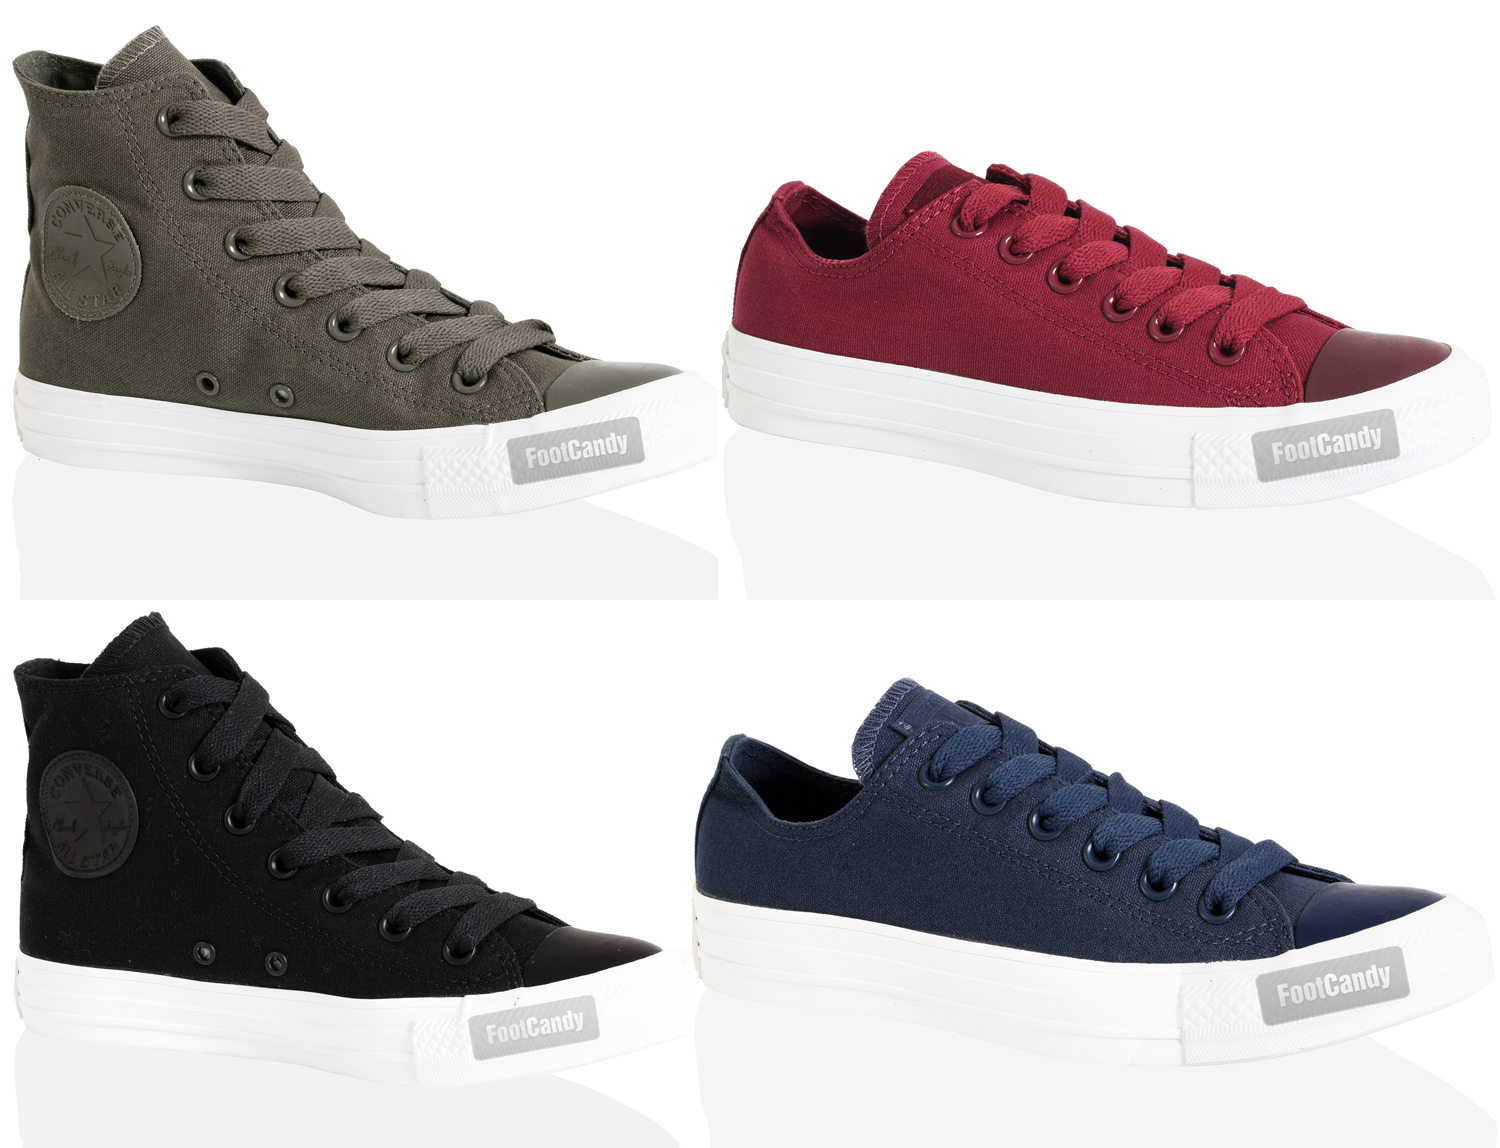 CONVERSE-ALL-STAR-CHUCK-TAYLOR-PLUS-HI-LO-TOP-OXFORD-CANVAS-TRAINERS-SHOES-SIZE